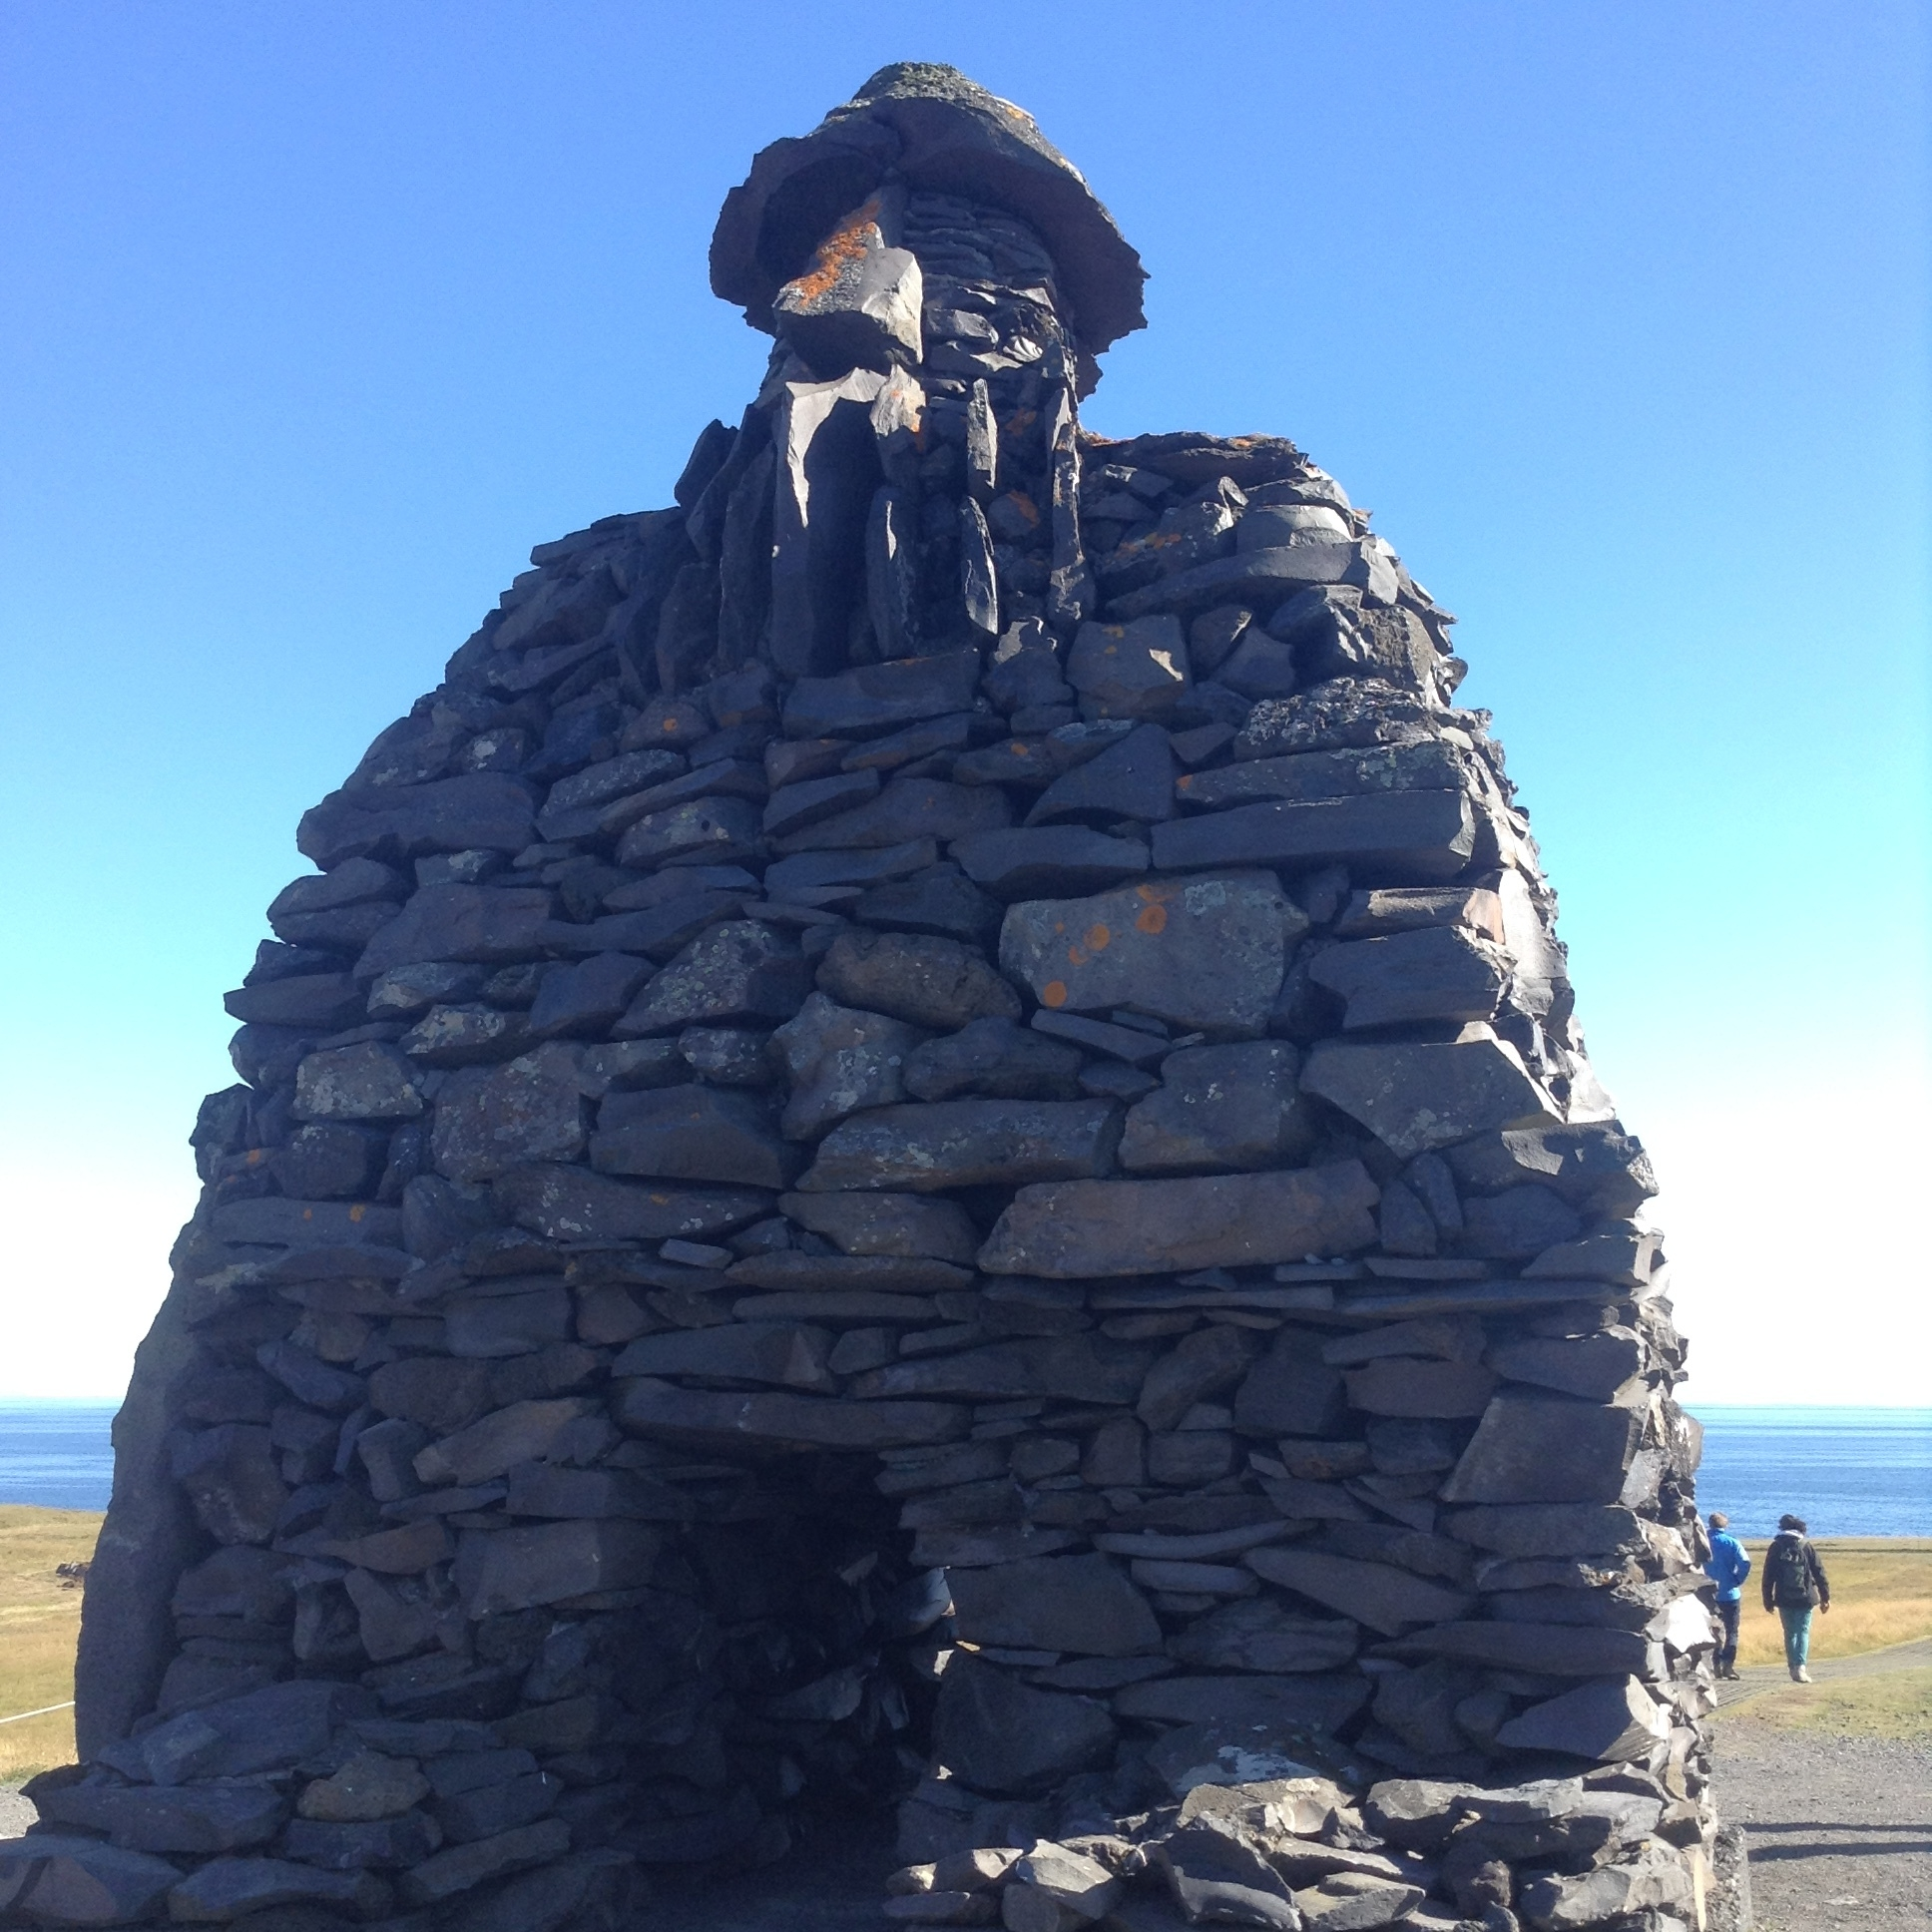 Bardur statue, Iceland by The Doubtful Traveller